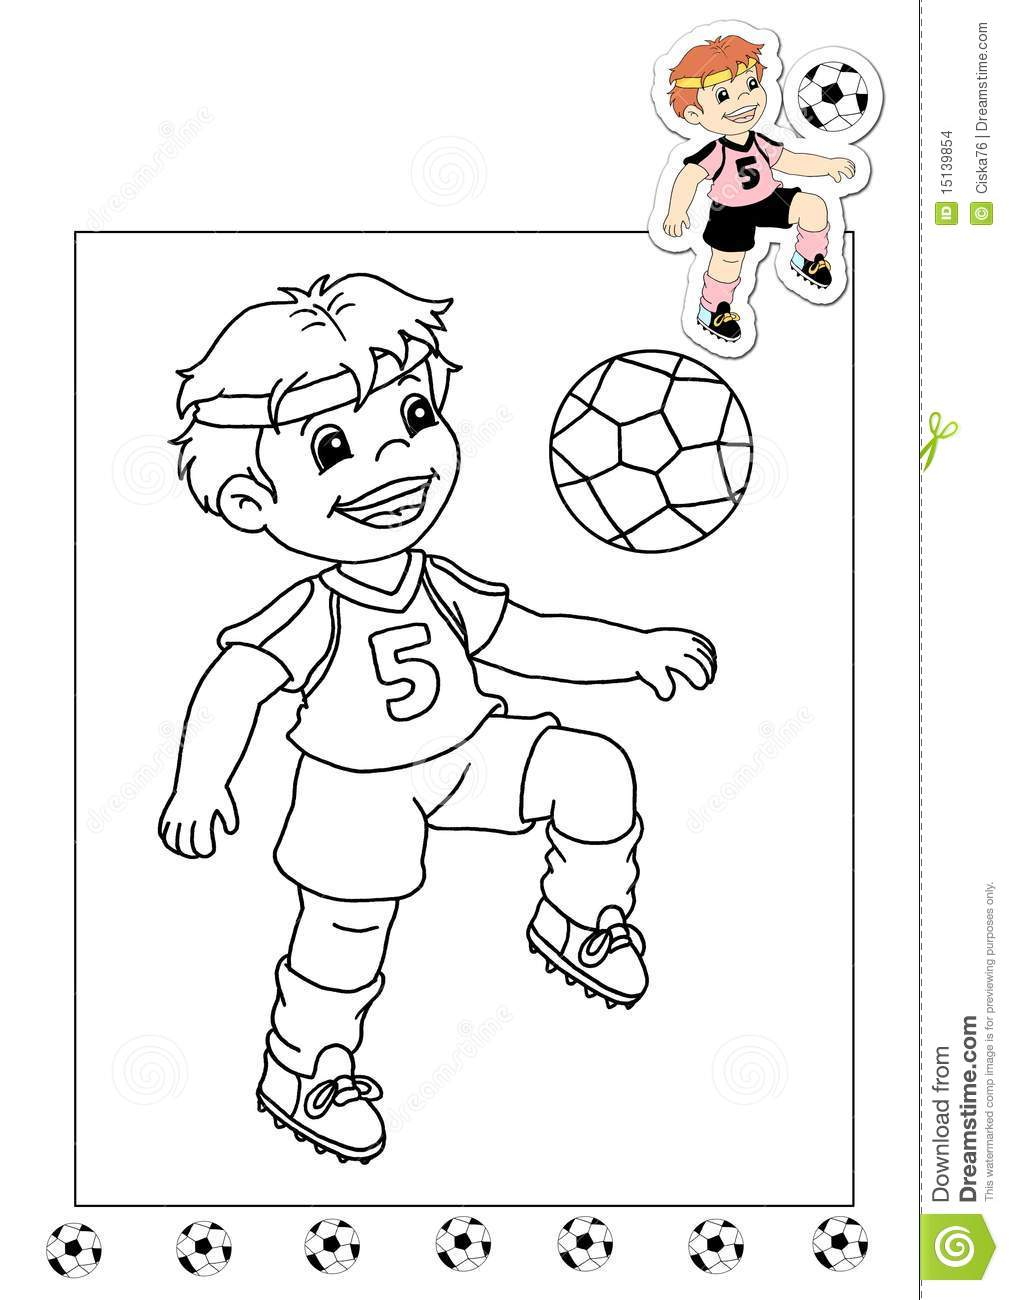 Coloring Book Of The Works 29 - Soccer Player Stock Illustration ...